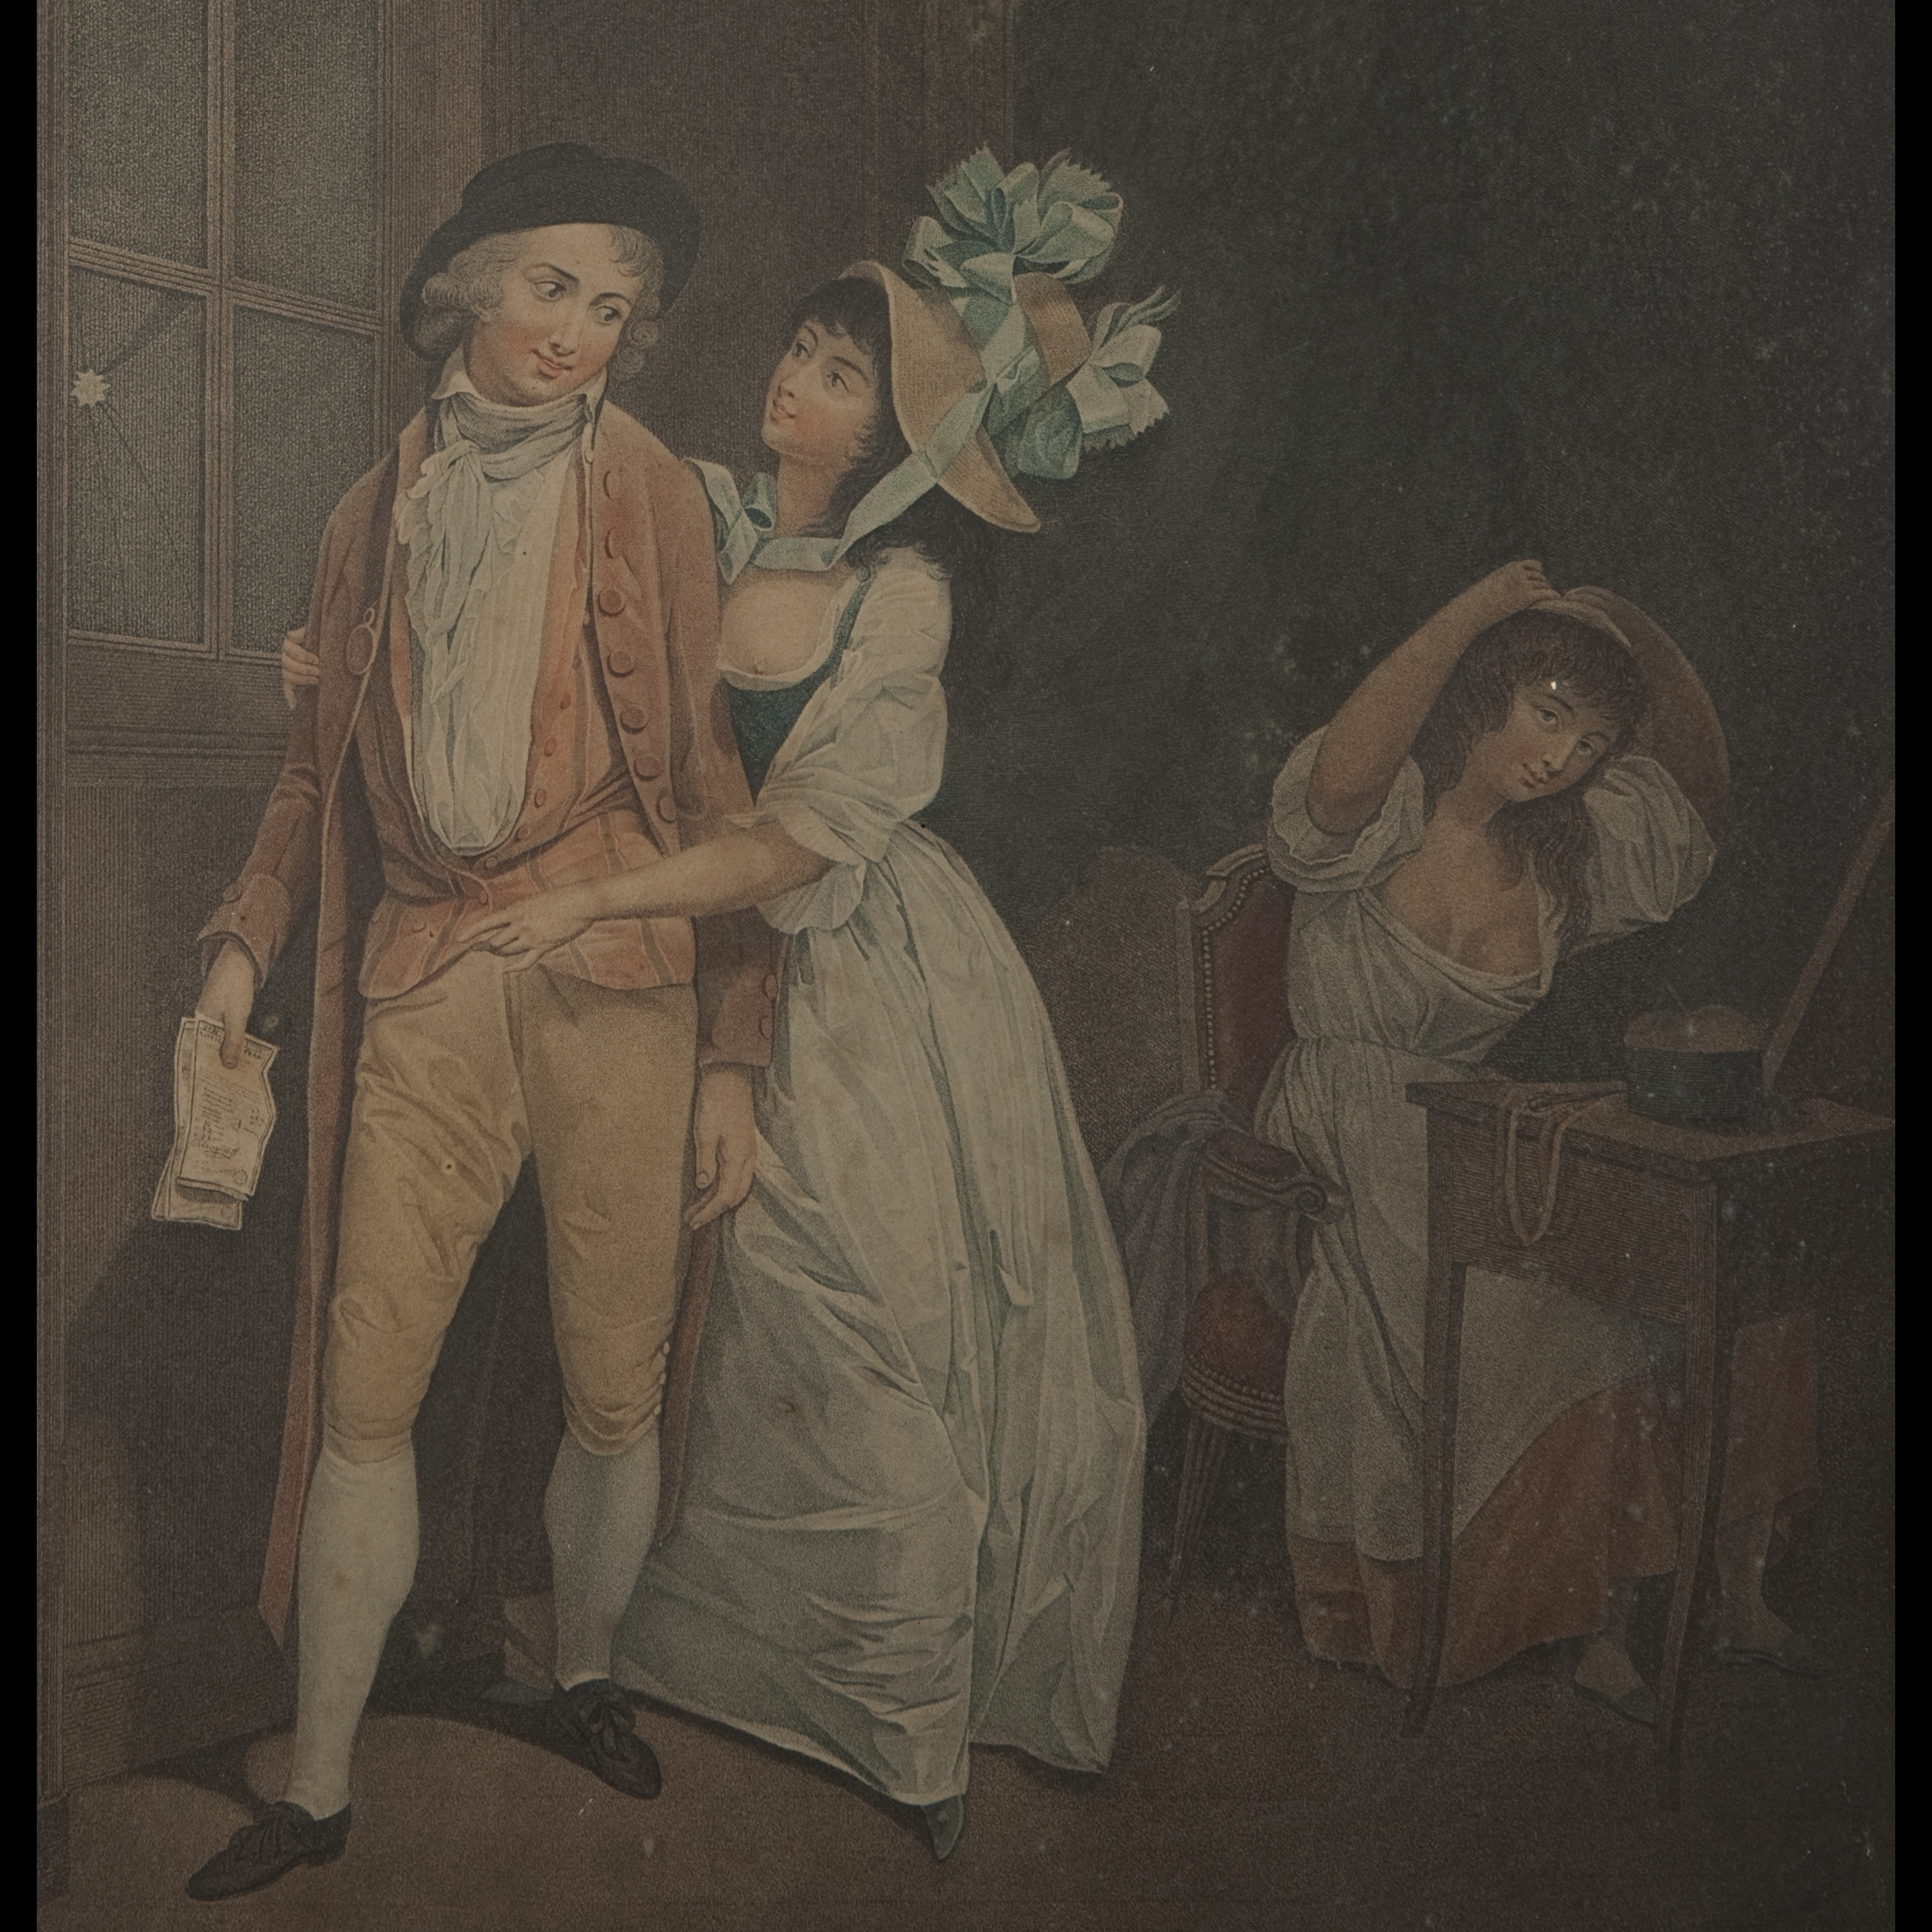 Boilly On la tire aujourd'hui